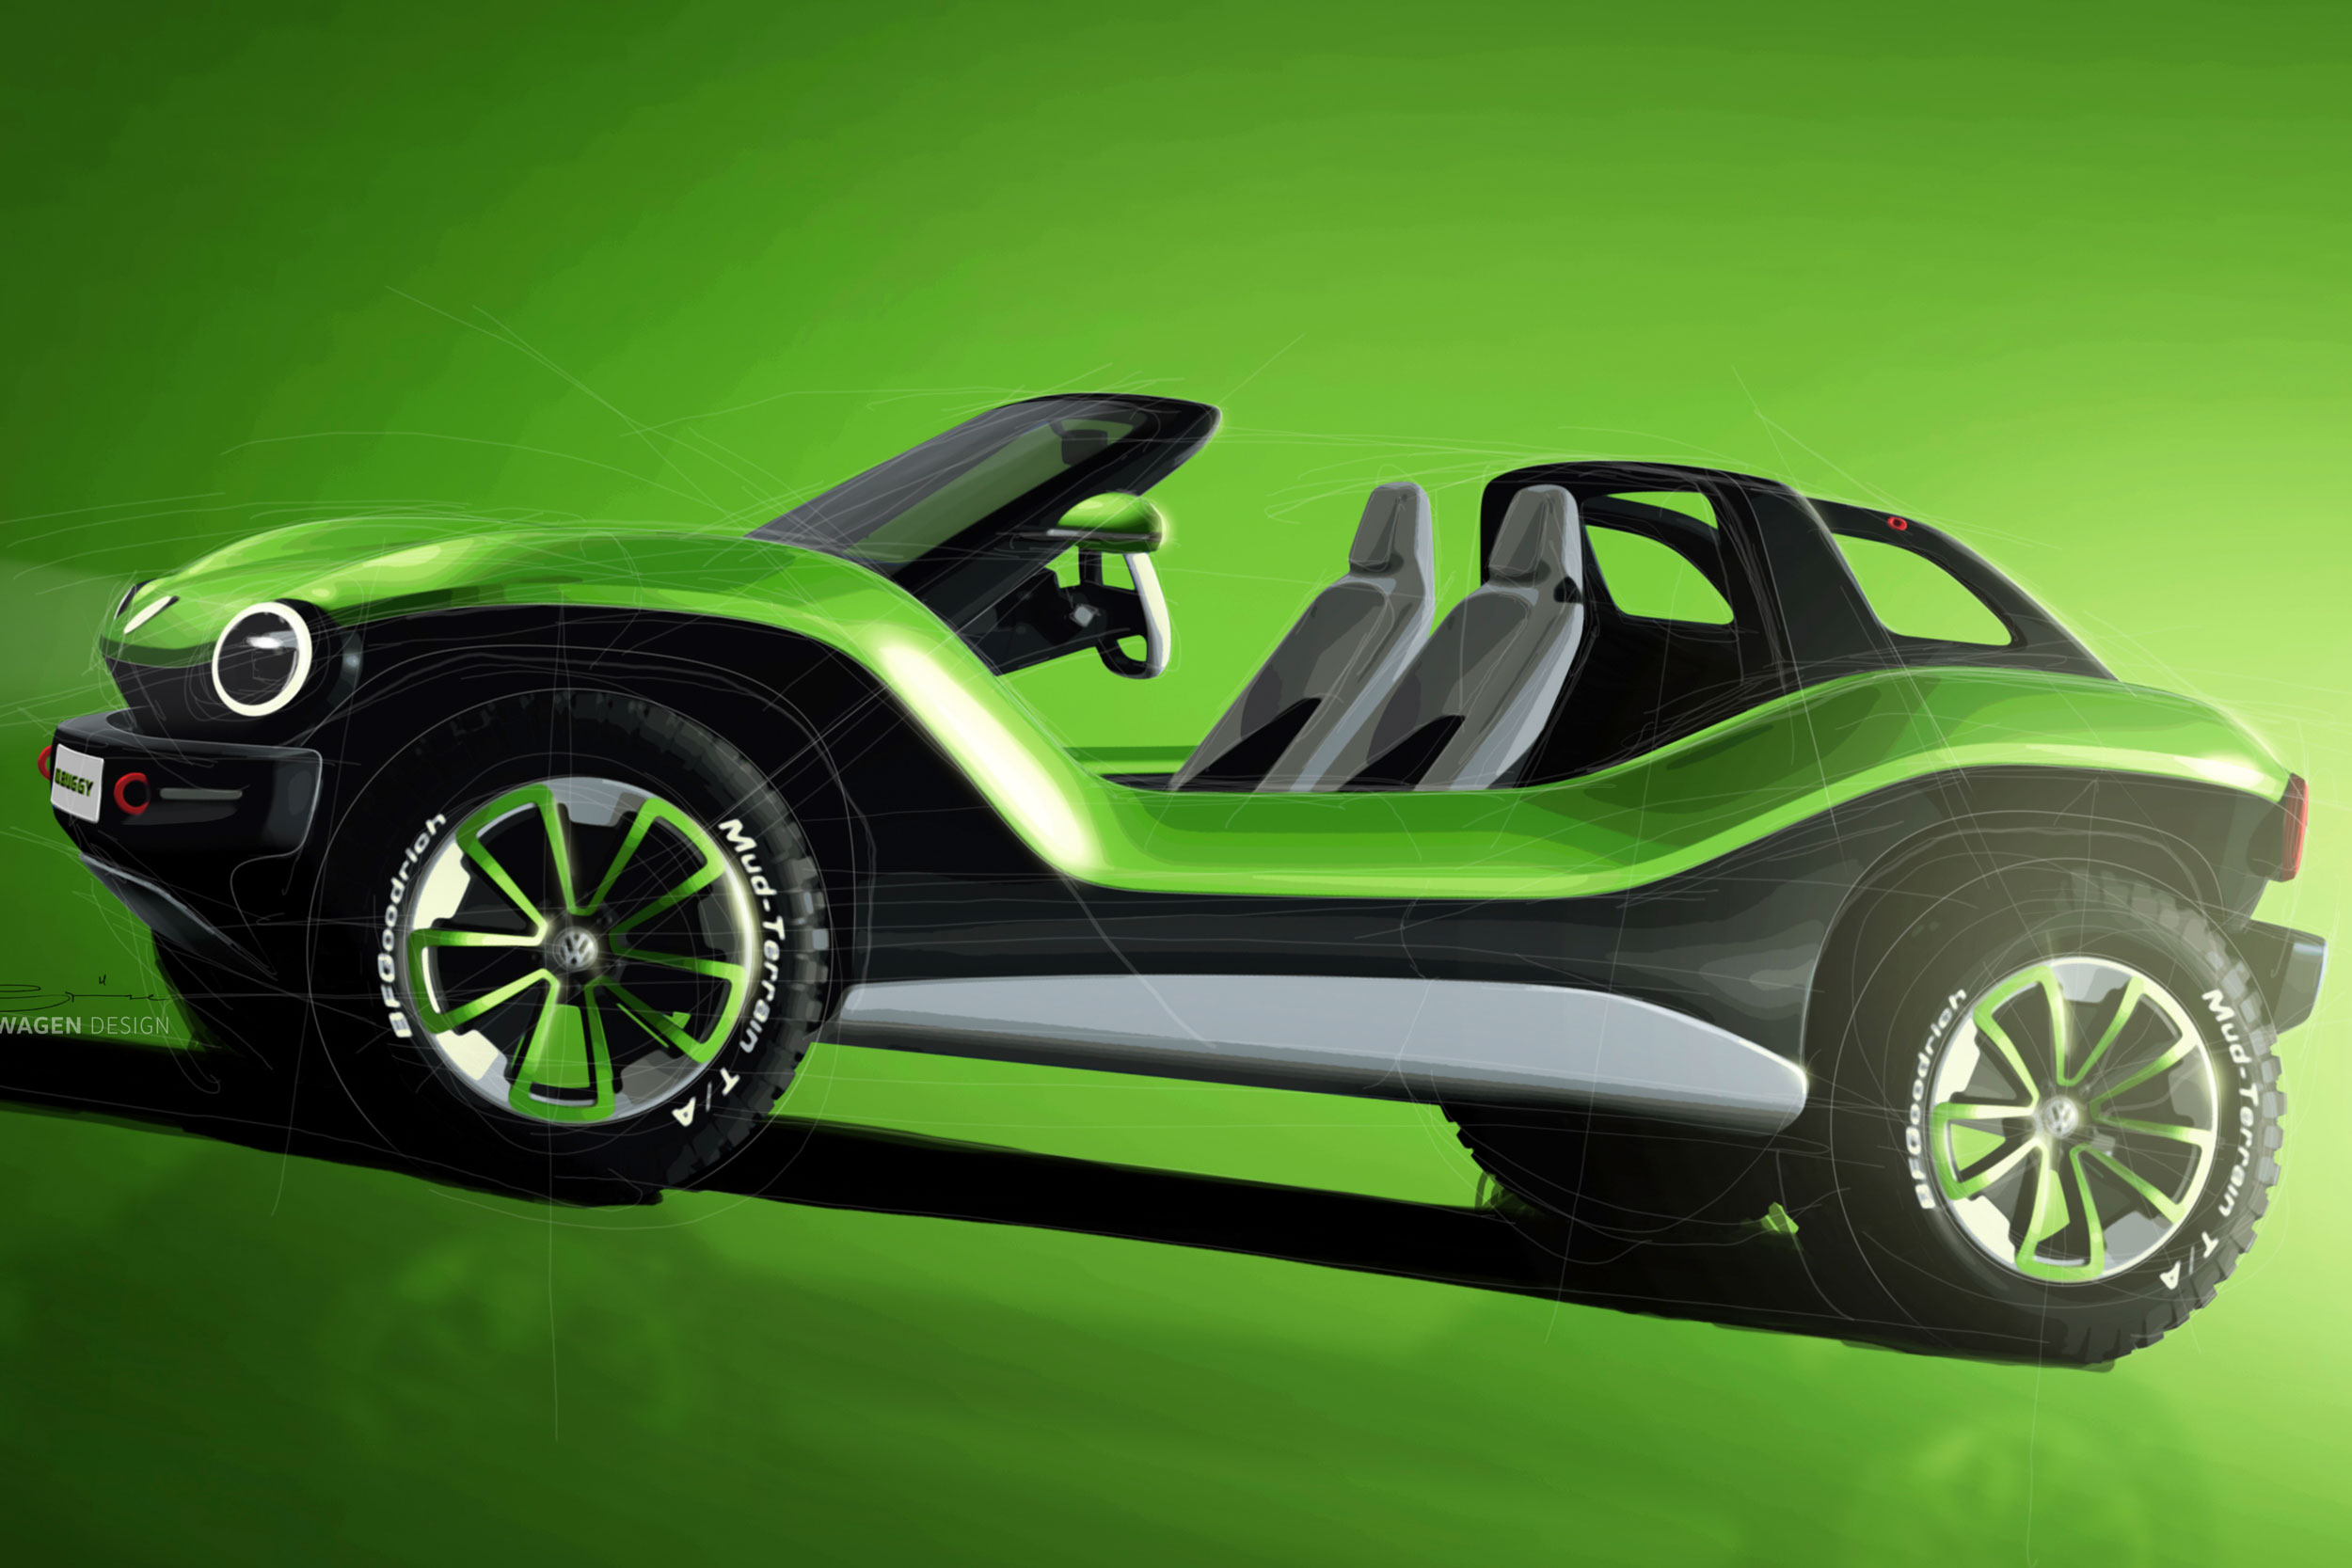 VW Dune Buggy side profile green